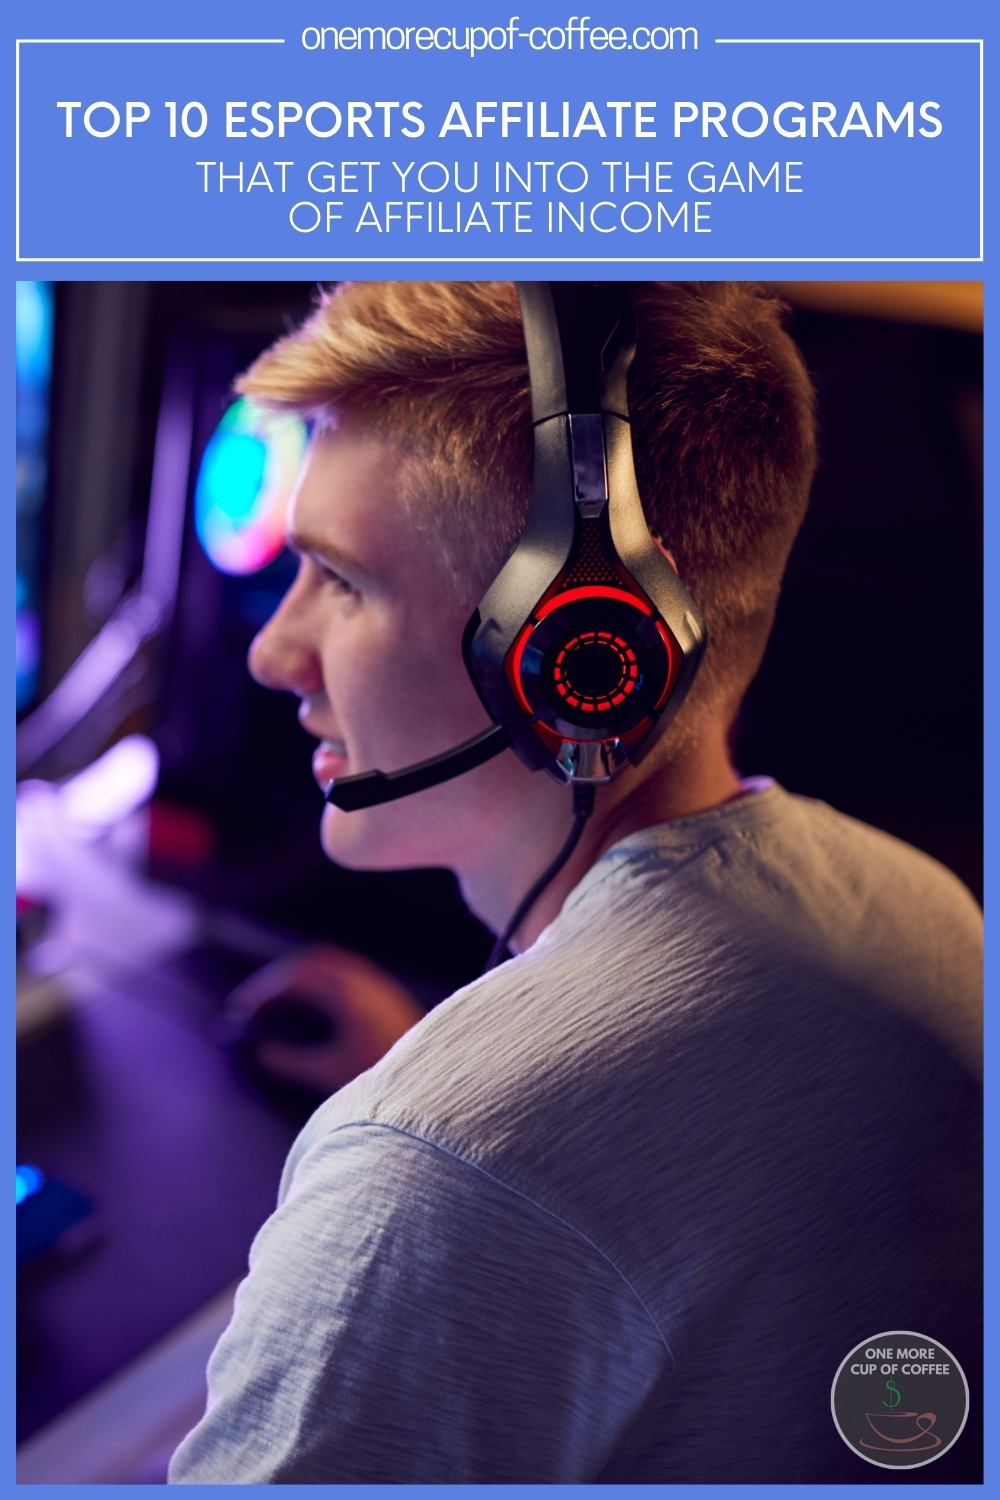 male Esports gamer with headset looking at his monitor; with text overlay